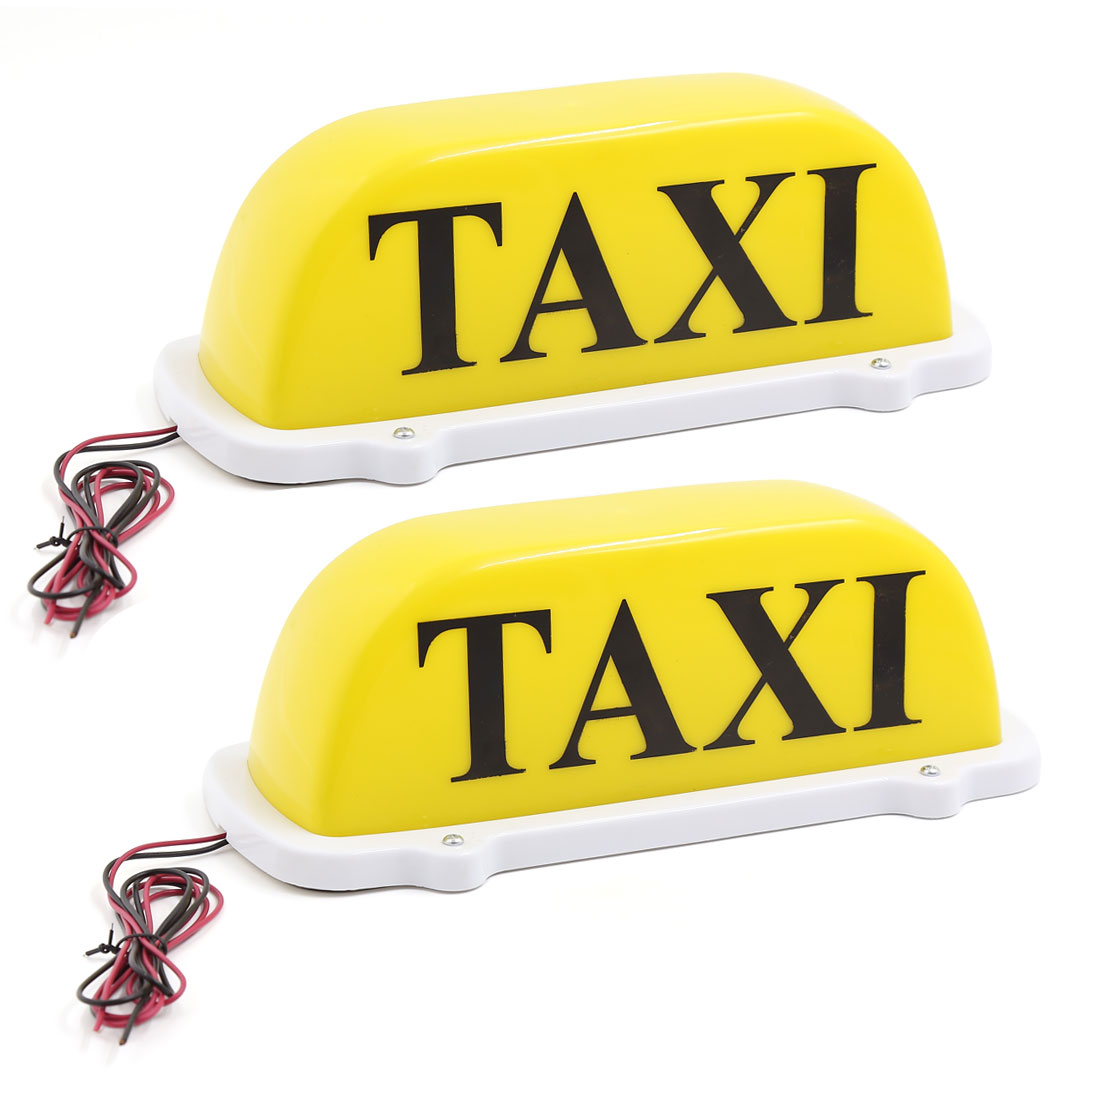 2 Pcs Yellow LED Magnetic Base Car Auto Cab Taxi Roof Lamp Top Sign Light DC 12V